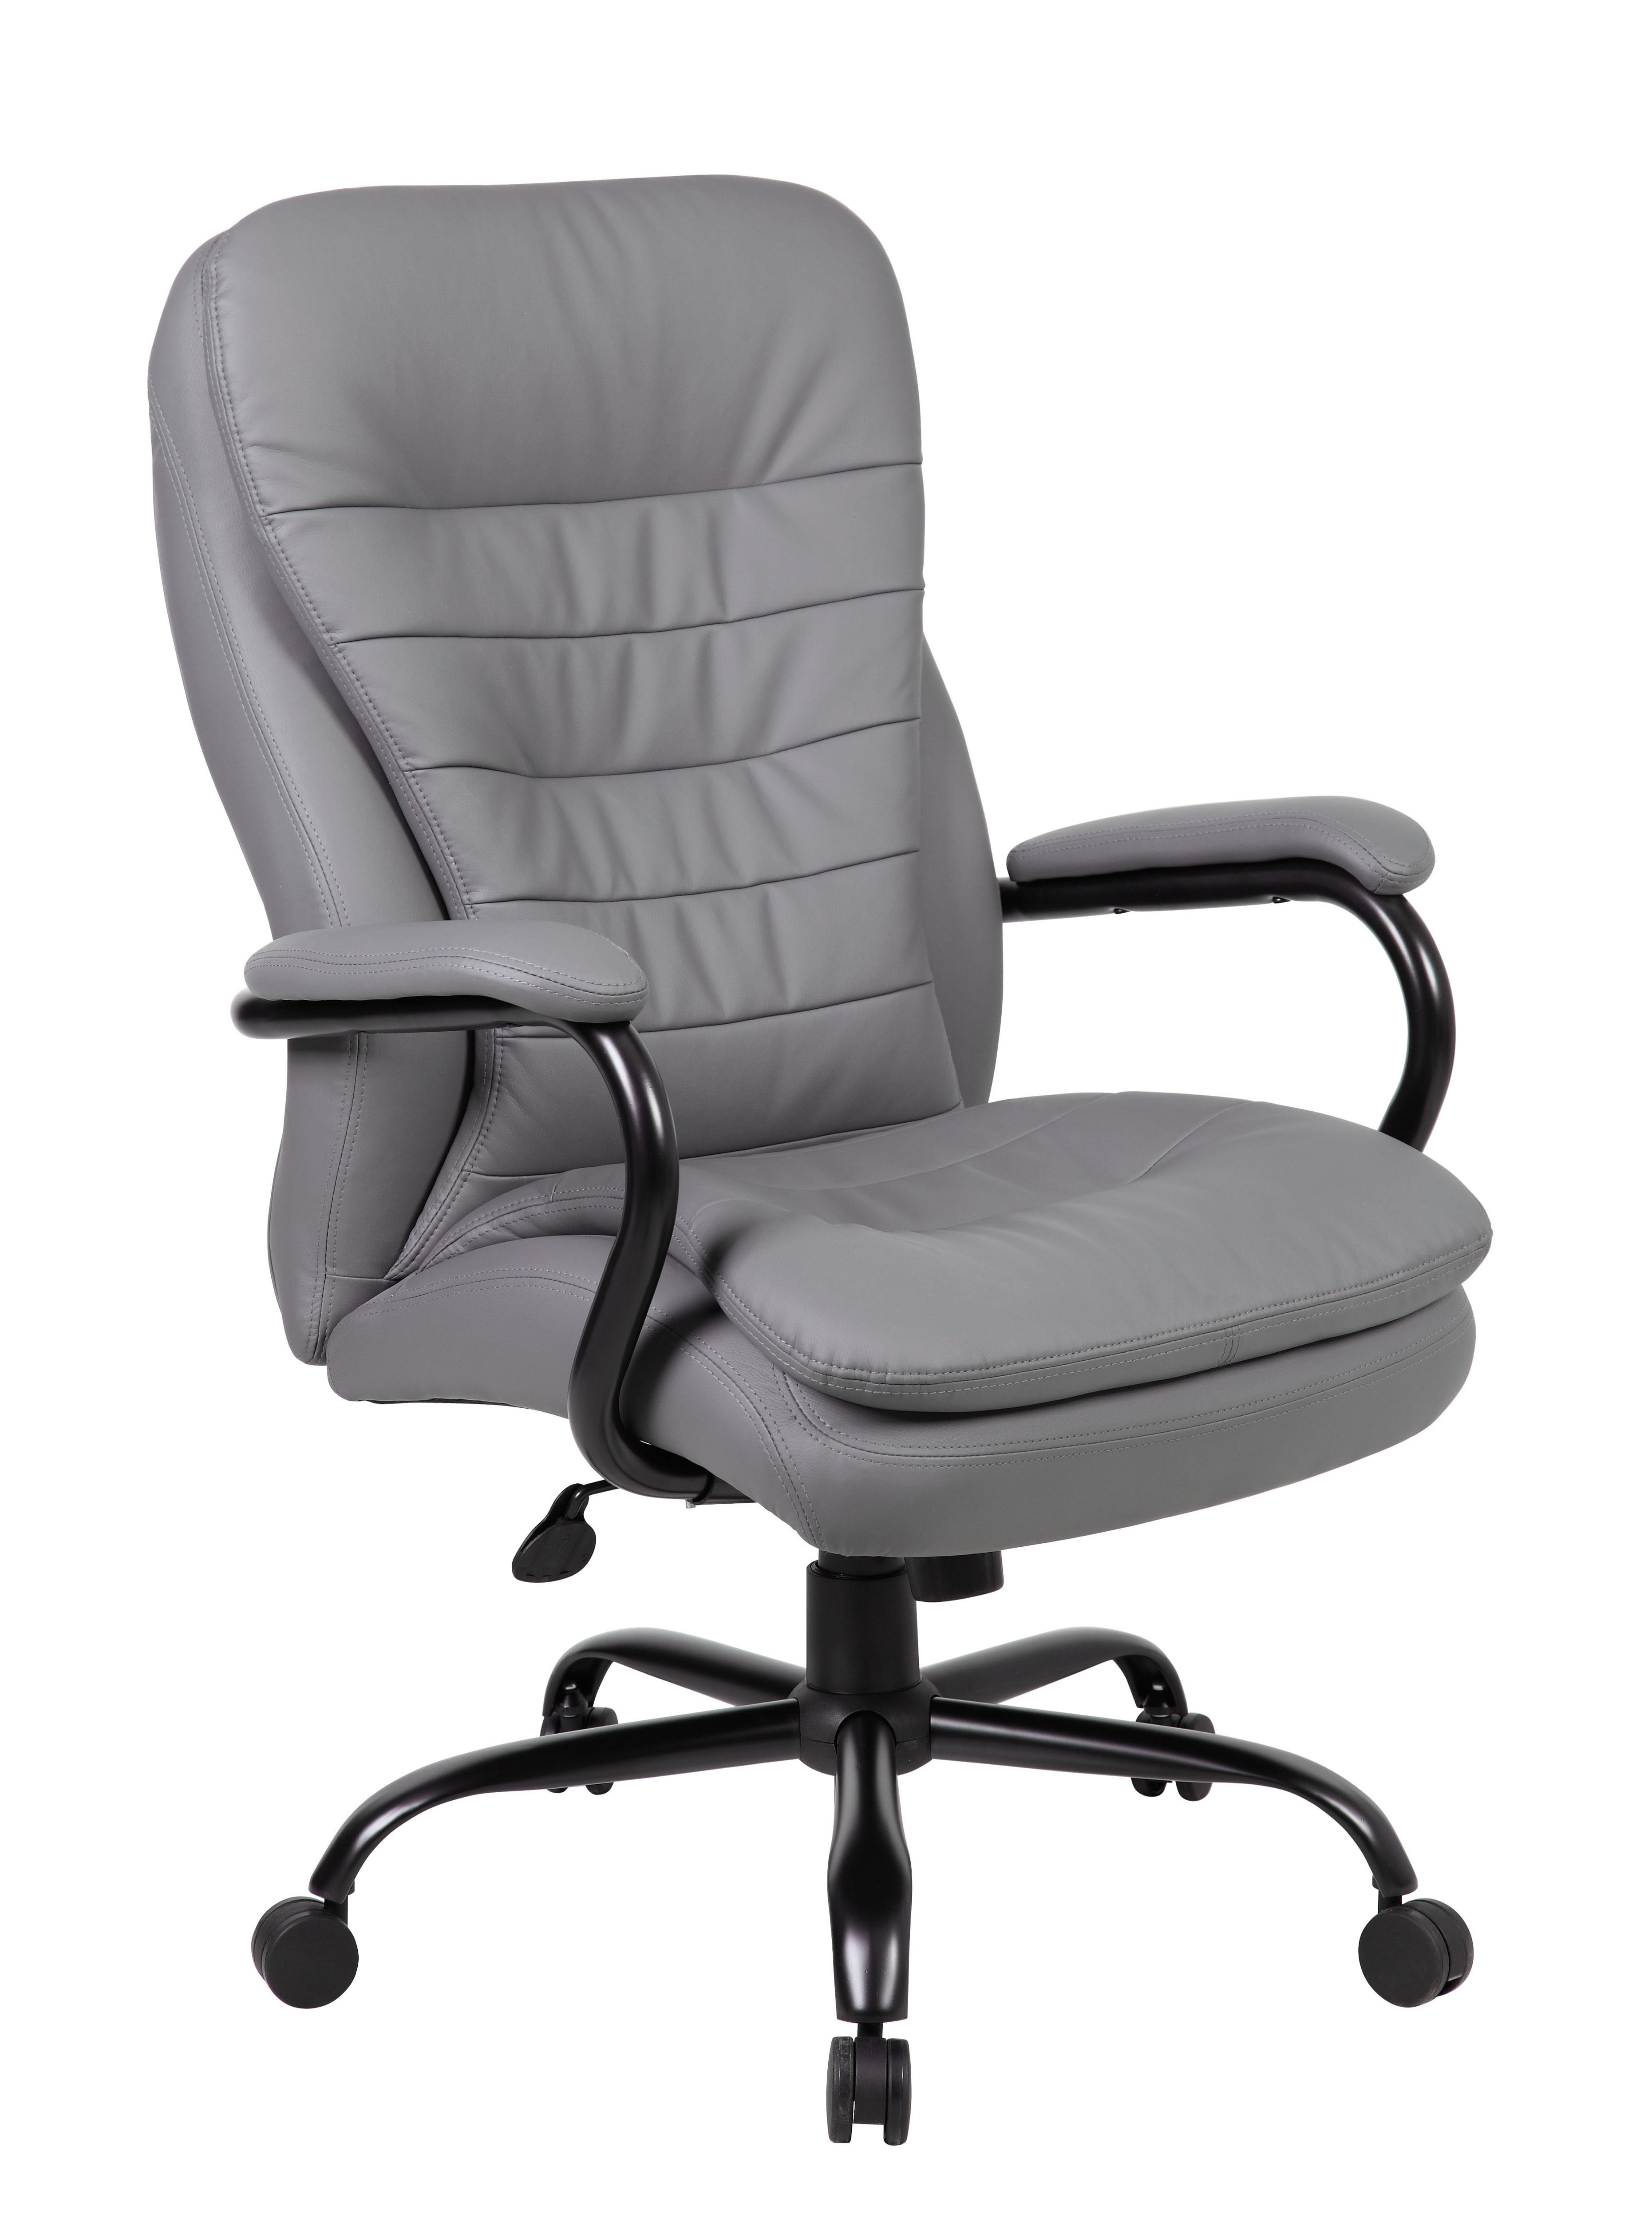 Plush Office Chair Boss Heavy Duty Double Plush Caressoftplus Chair B991